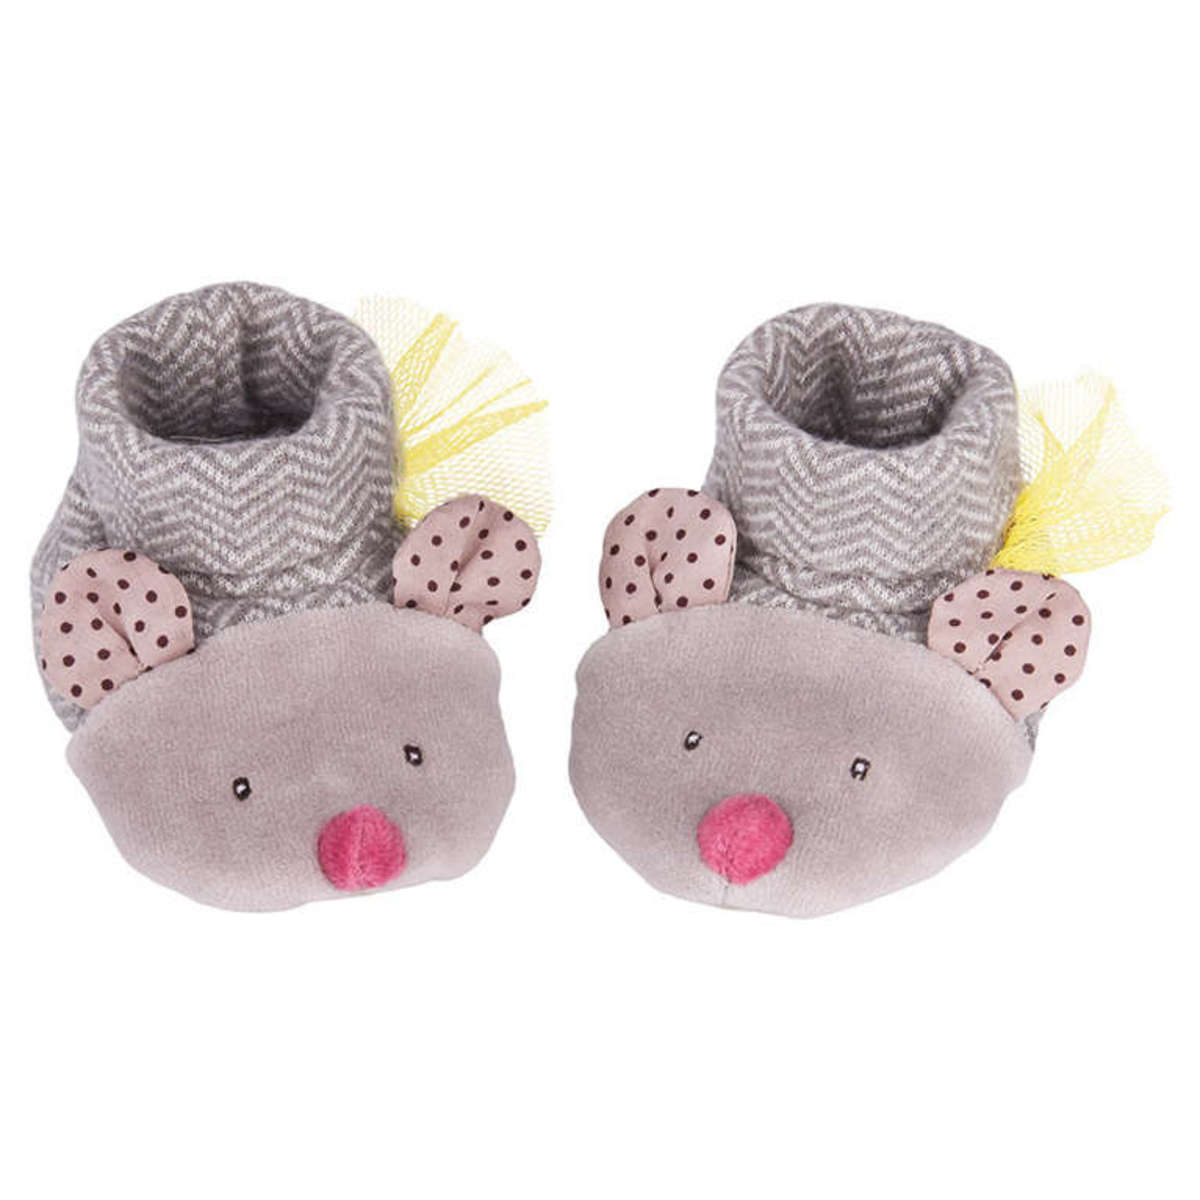 moulin roty chaussons souris gris les pachats chaussons chaussures moulin roty sur l. Black Bedroom Furniture Sets. Home Design Ideas